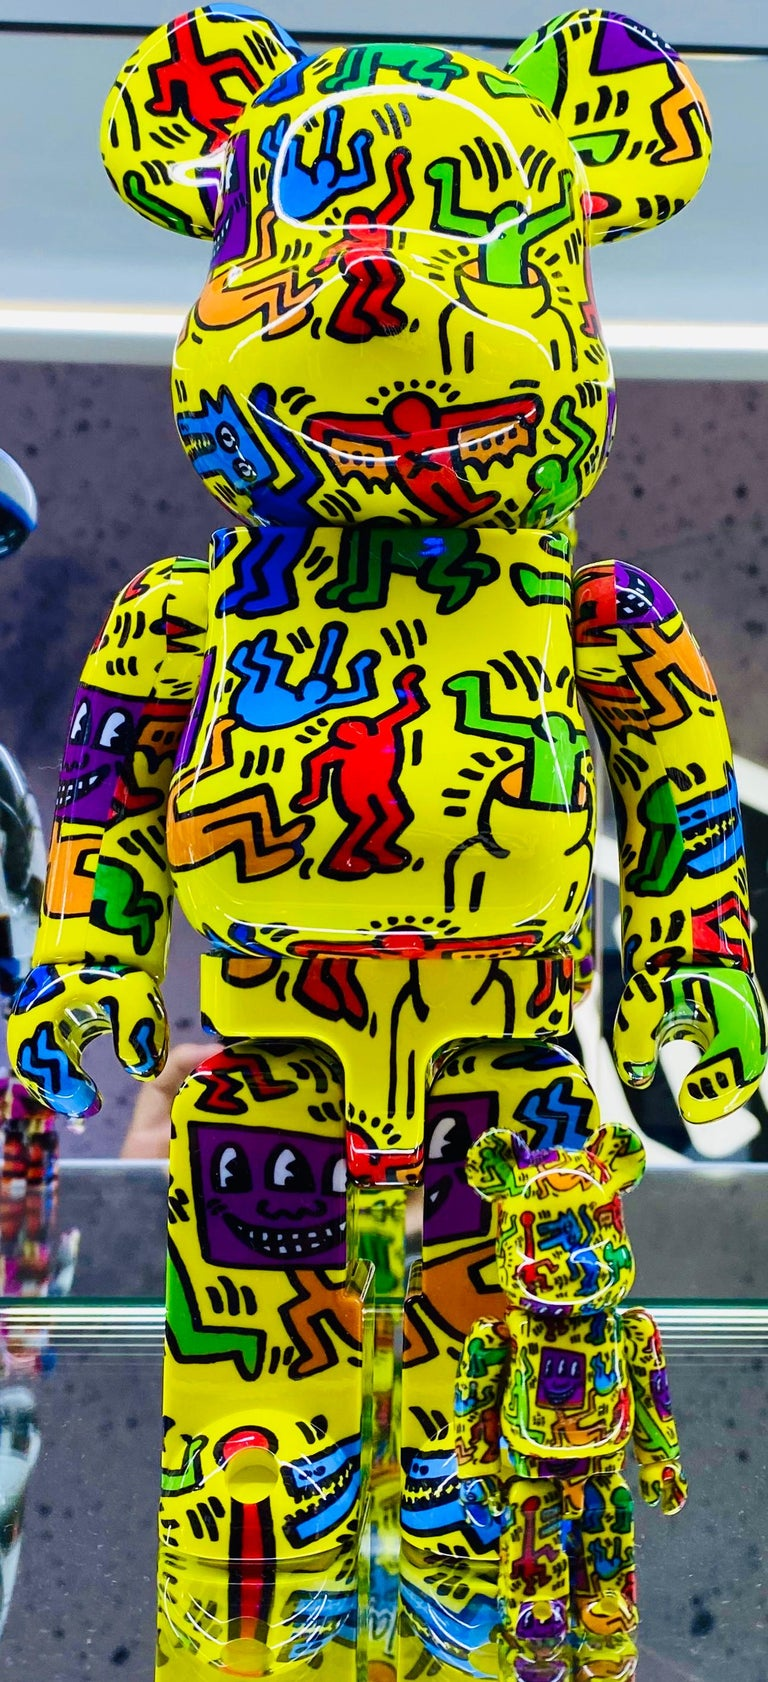 Keith Haring Bearbrick 400% Companion (Haring BE@RBRICK) - Print by (after) Keith Haring